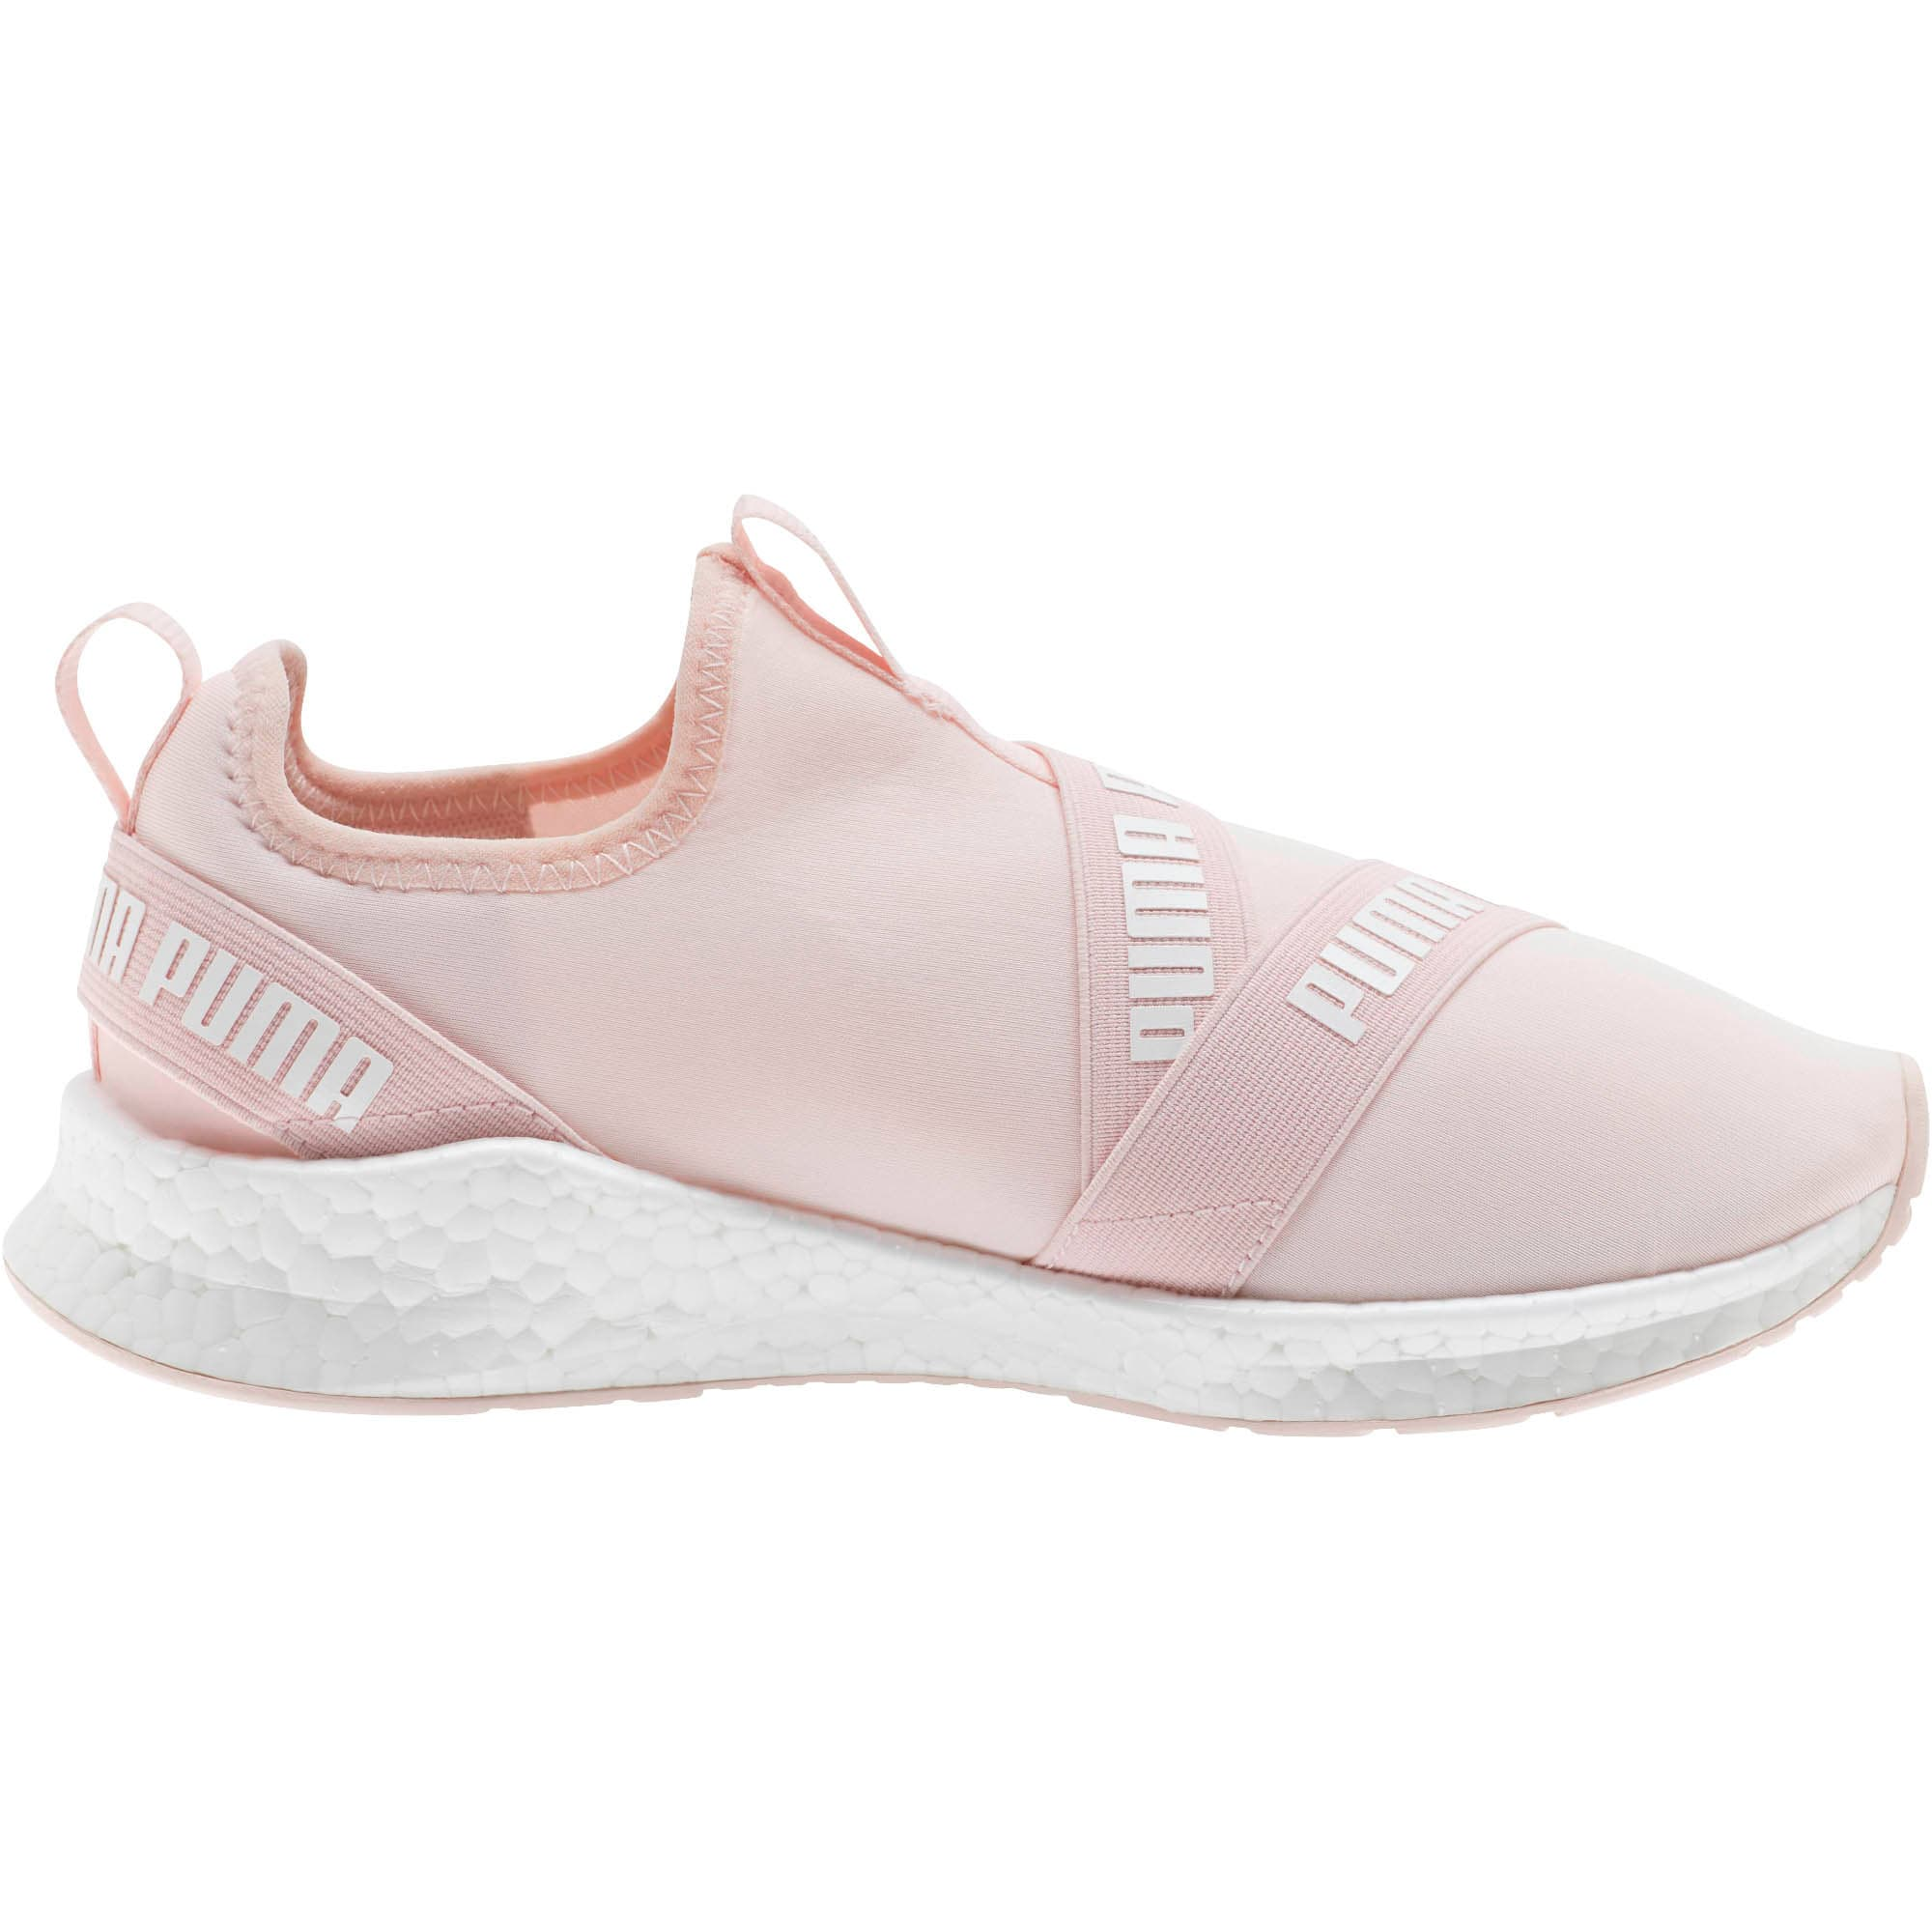 Thumbnail 4 of NRGY Star Slip-On Women's Running Shoes, Pearl-Puma White, medium